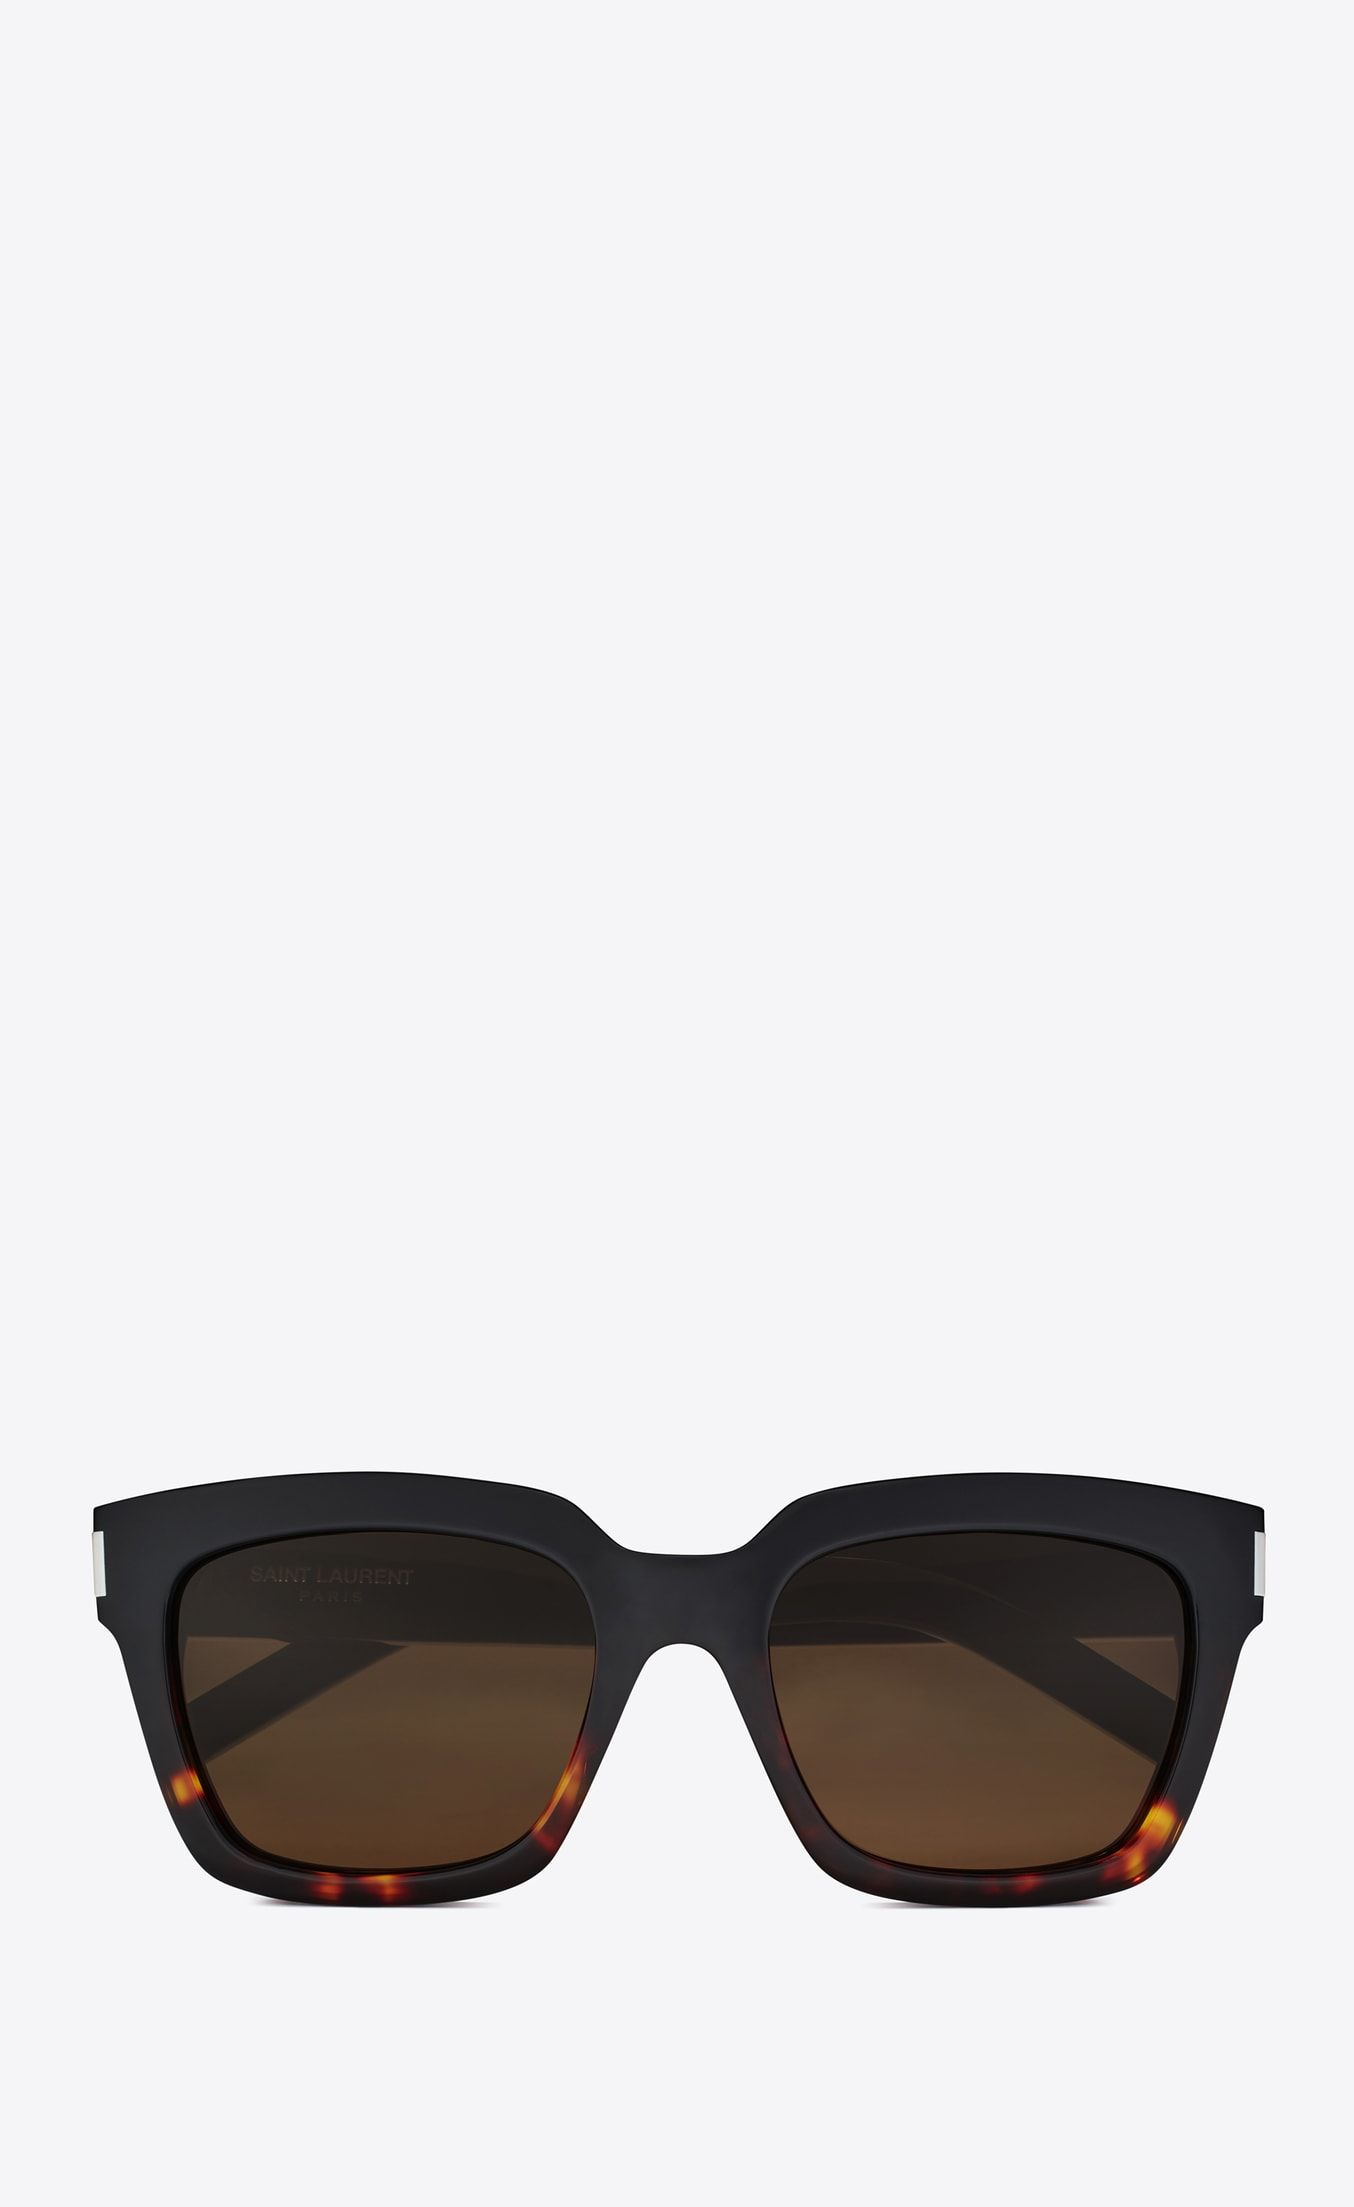 7c64c69beb Saint Laurent Bold 1 Sunglasses In Black And Havana Red Acetate Frames With  Smoked Lenses